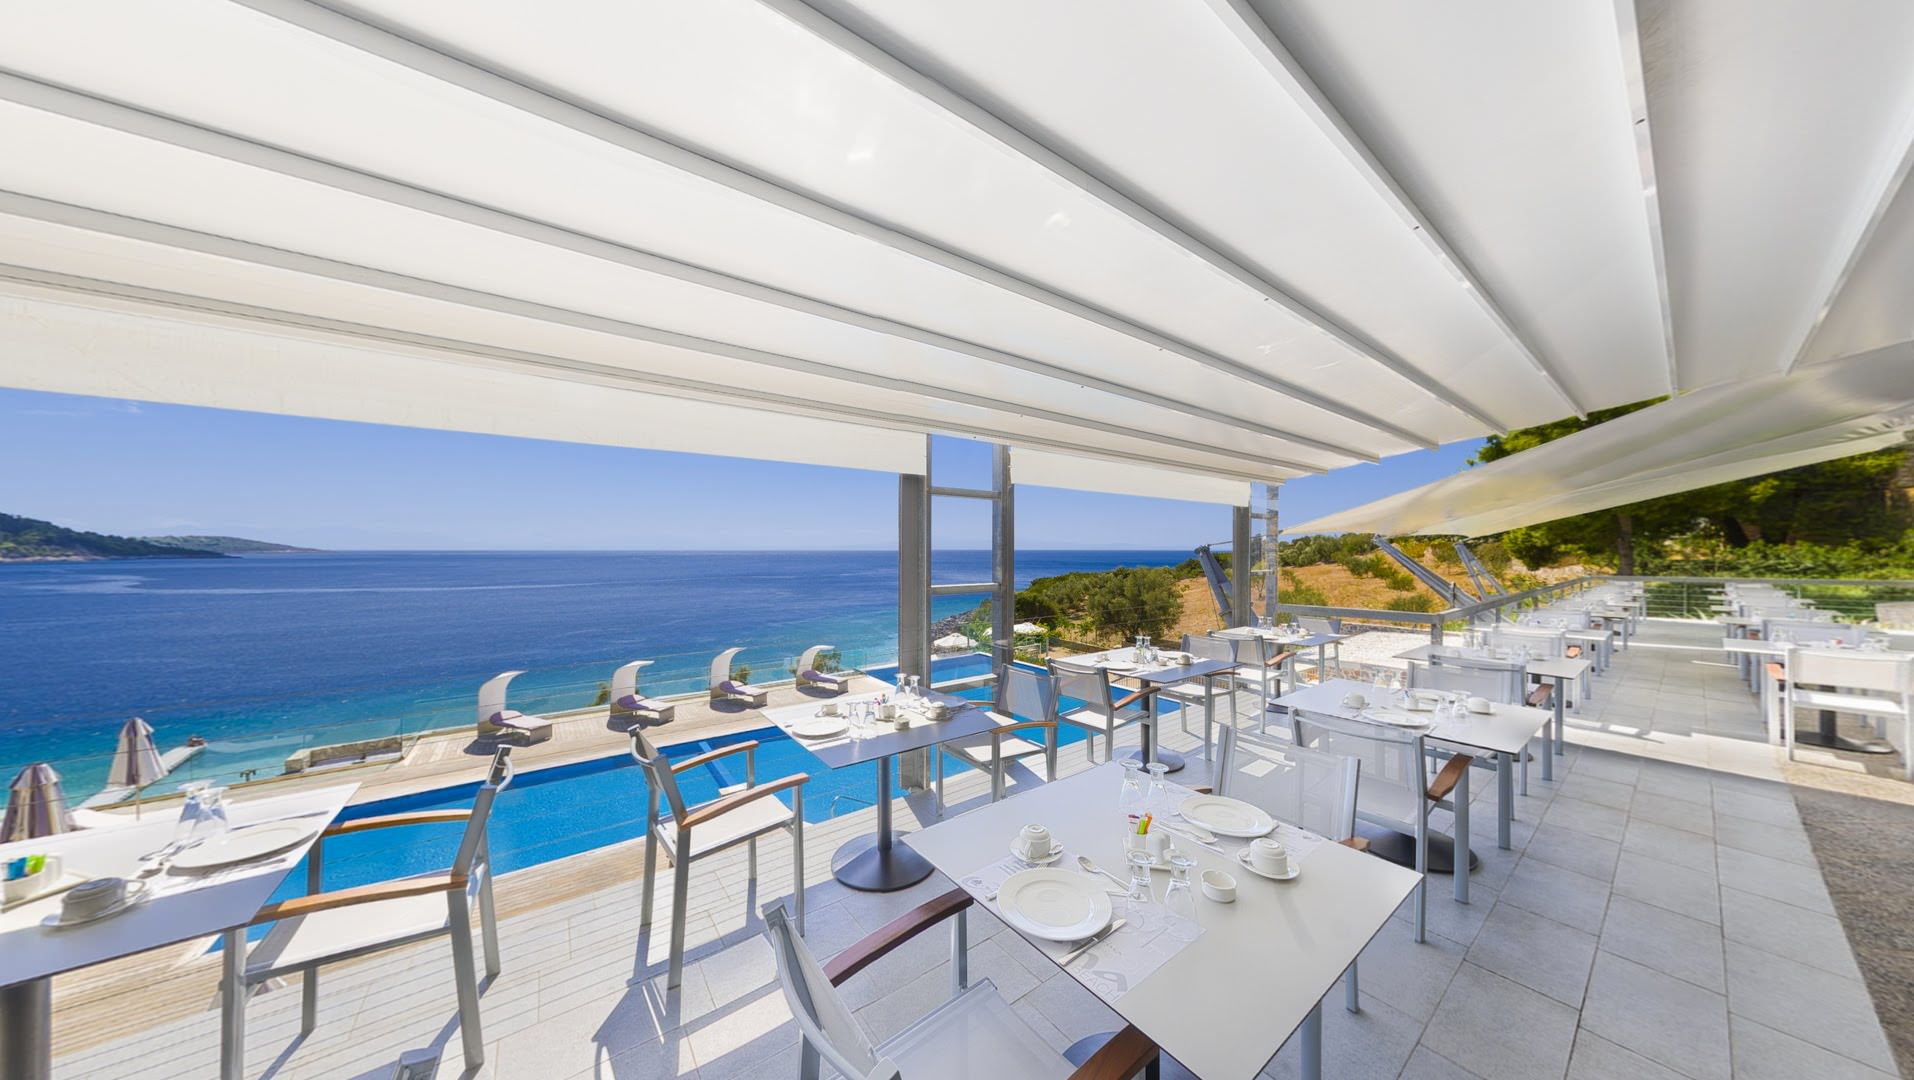 skopelos hotels adrina resort breakfast 5